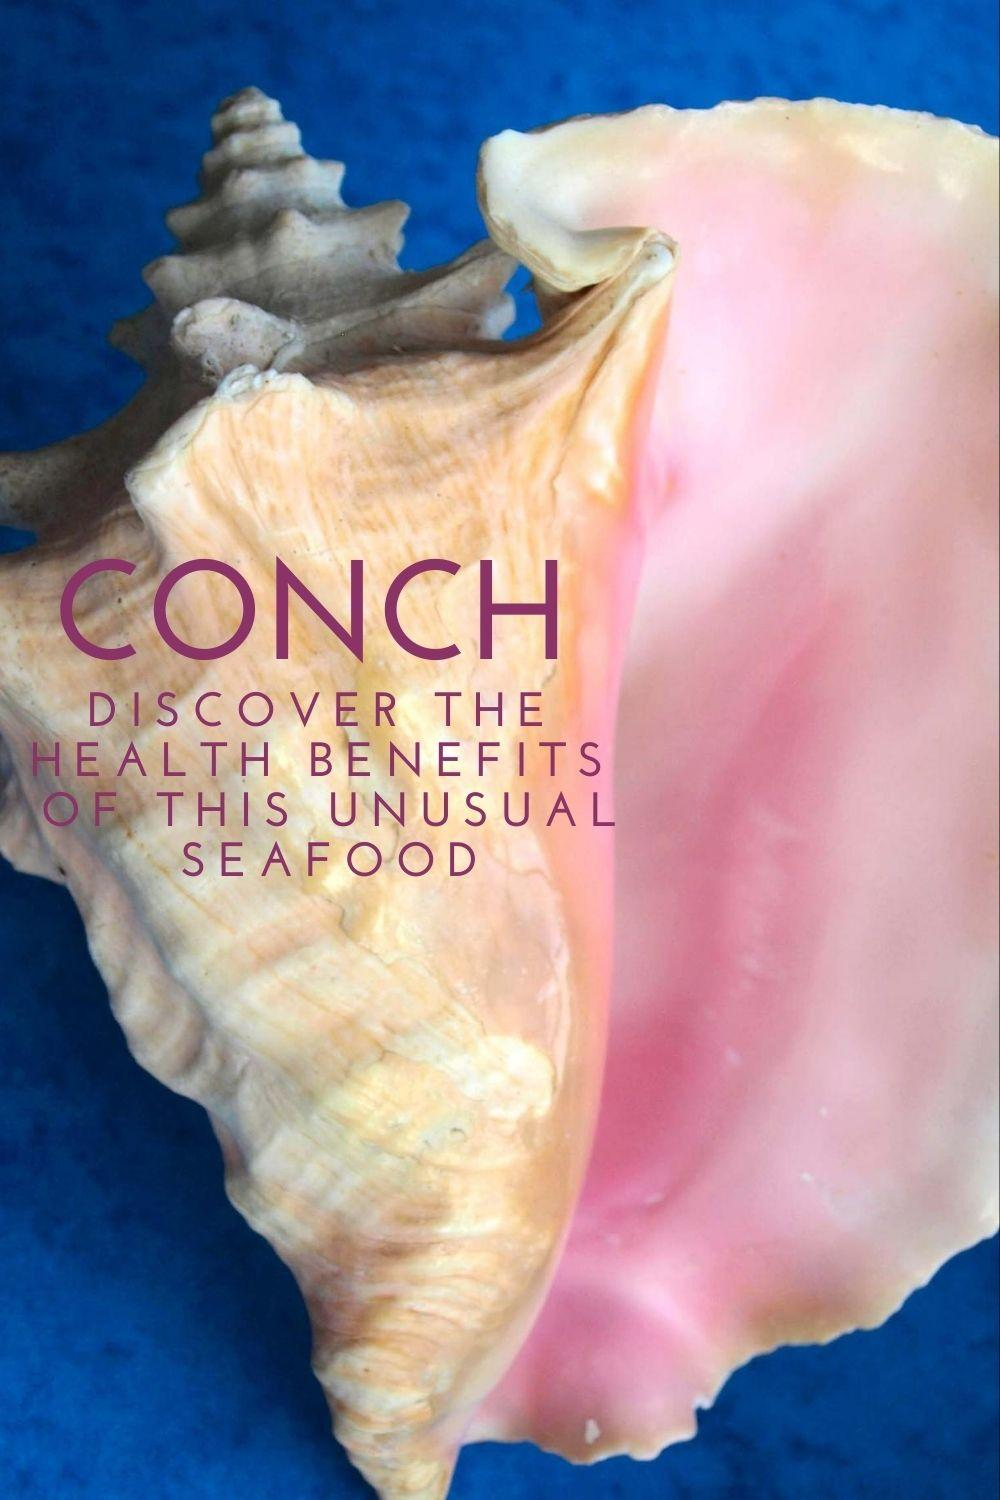 Conch - discover the health benefits of this unusual seafood graphic